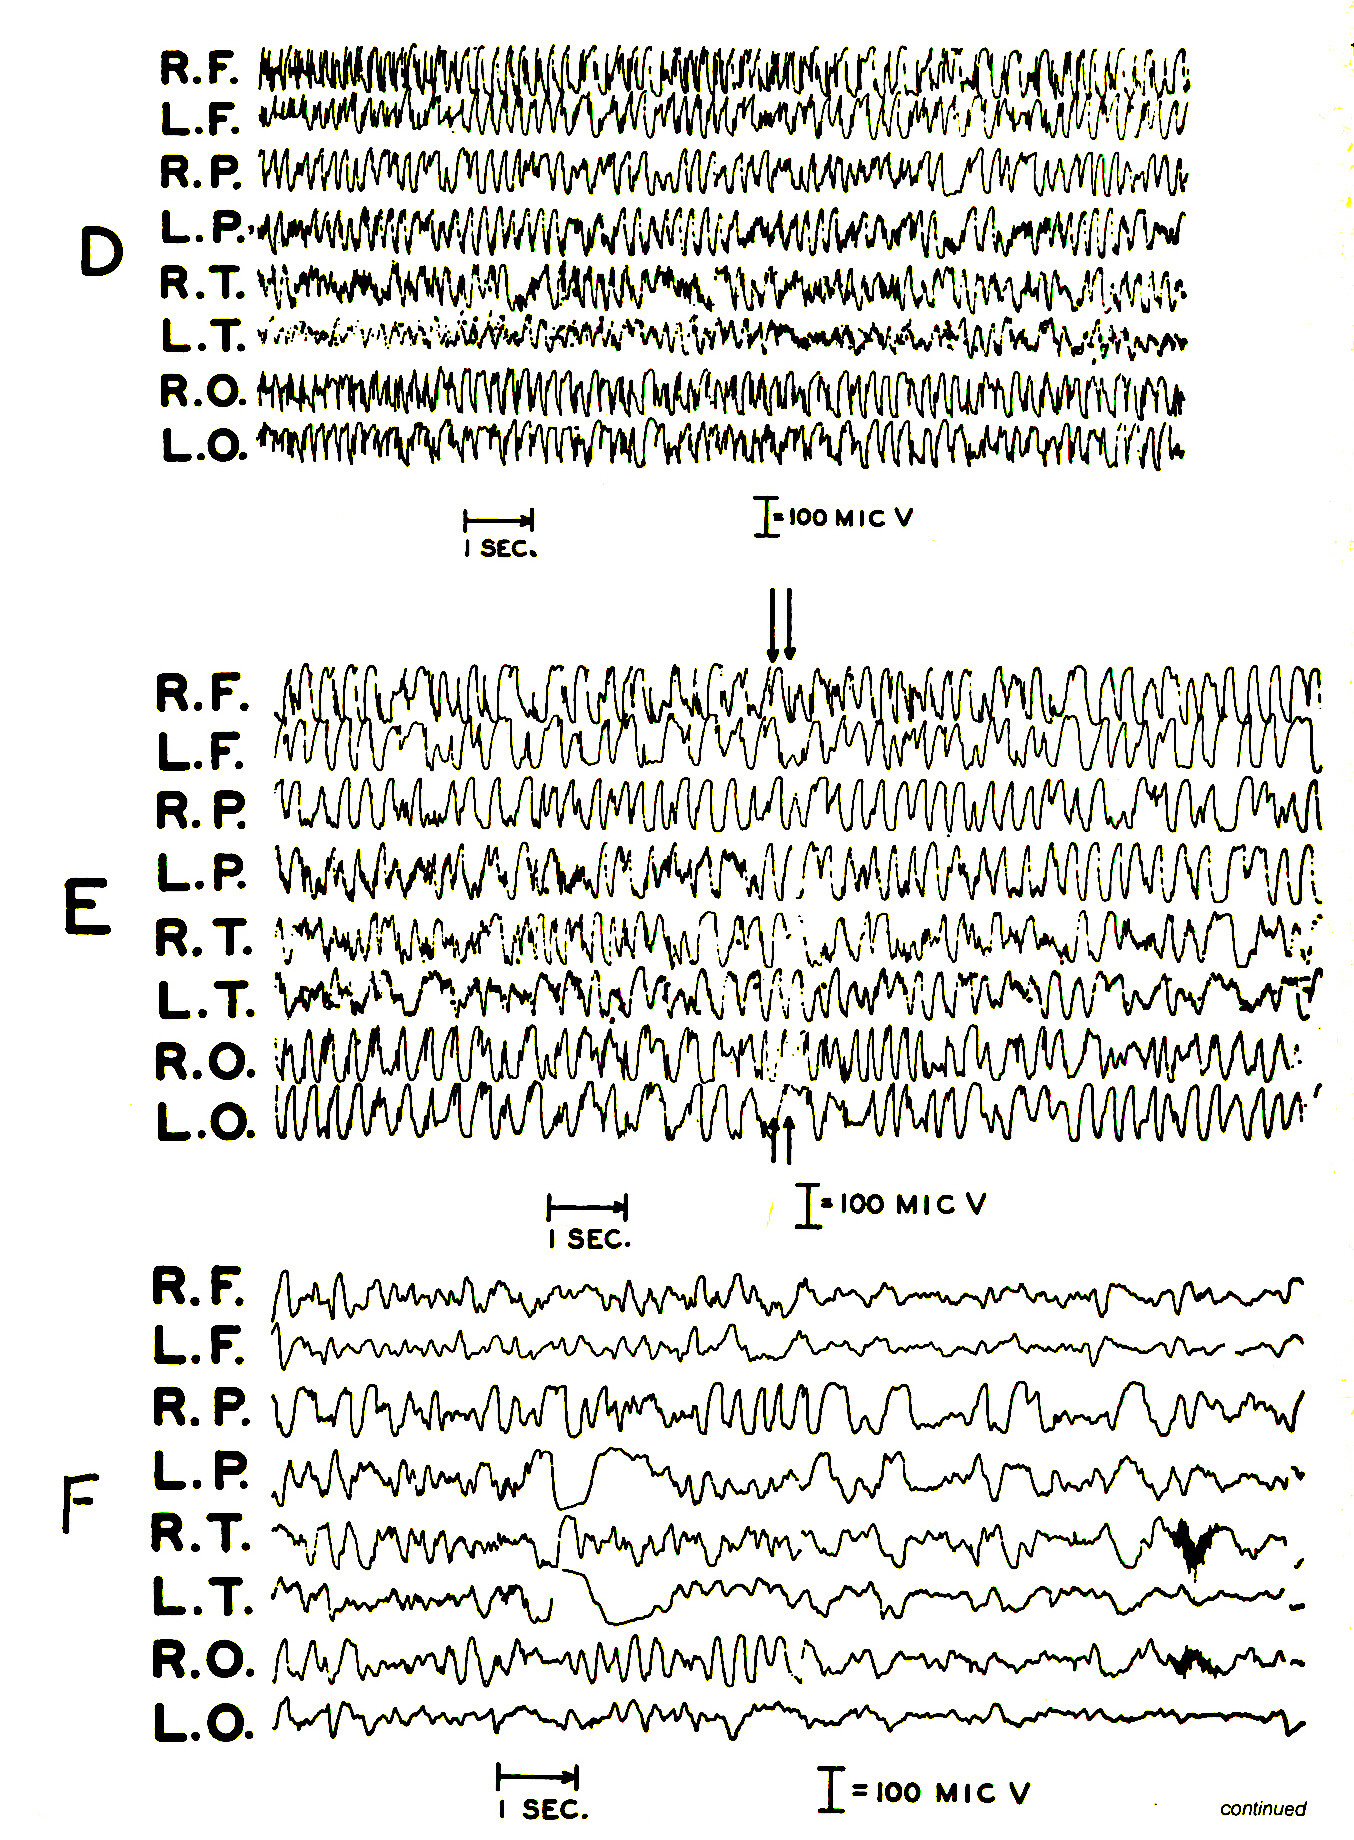 Figure 2. EEG of boy taken during generalized major-motor (grand mal) seizure. This five-year-old had a major-motor tonic seizure while the examination was being performed. The seizure began at the point marked by the arrow on 2-A and lasted for approximately one minute (2-B, C1 D, and E), terminating at the point marked with the double arrow on 2-E. The postconvulsive phase lasted about 10 minutes. It consisted of marked drowsiness and was characterized by high-voltage slow-wave activity, ending with the return of normal electrical activity (2-F).